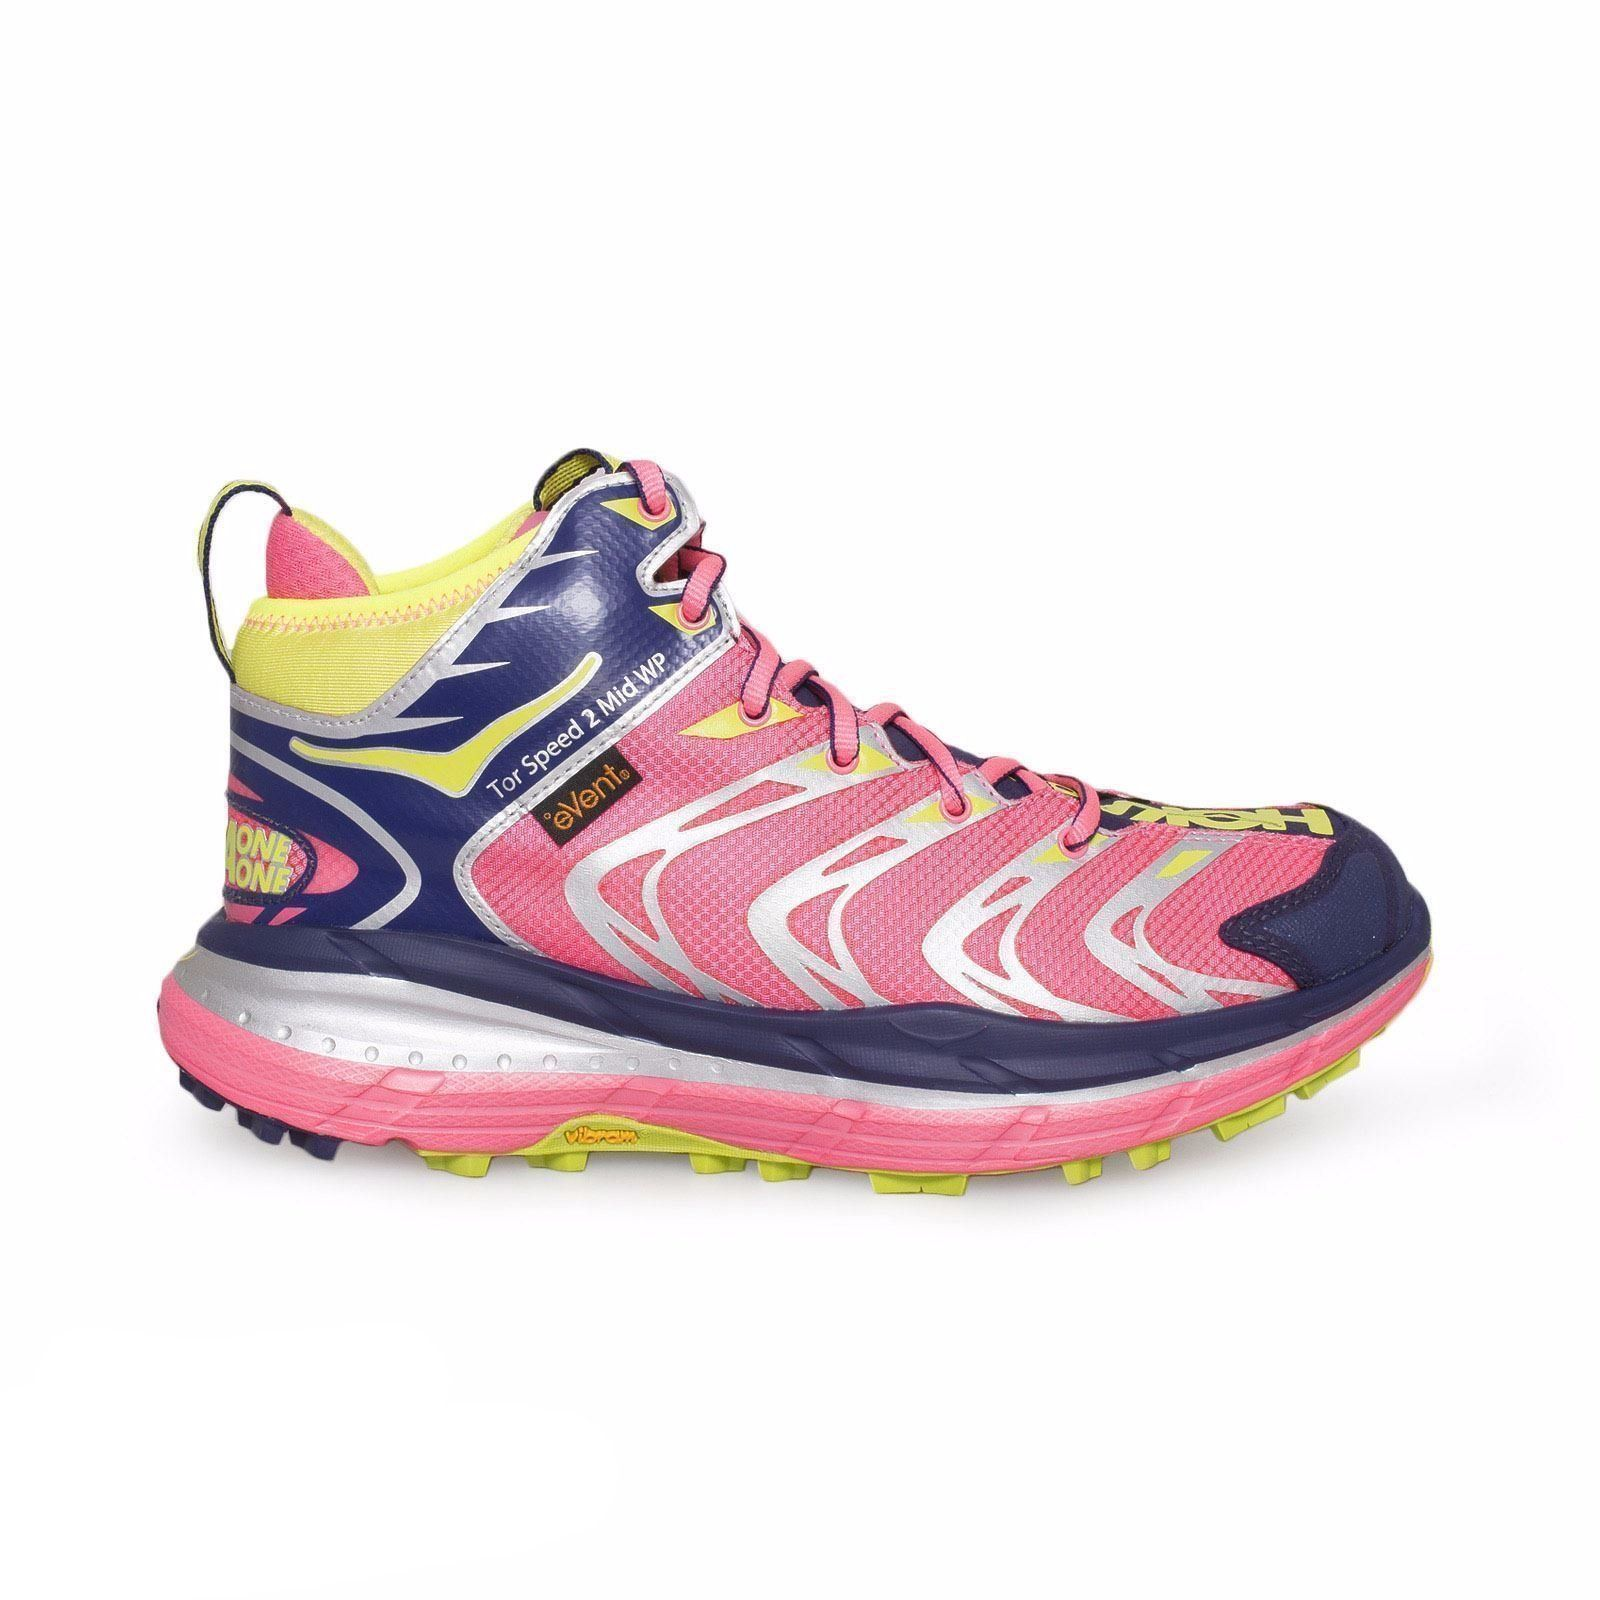 a7ddb3a644fbc Hoka One One Tor Speed 2 Neon Pink Astral Running Shoes | Products ...